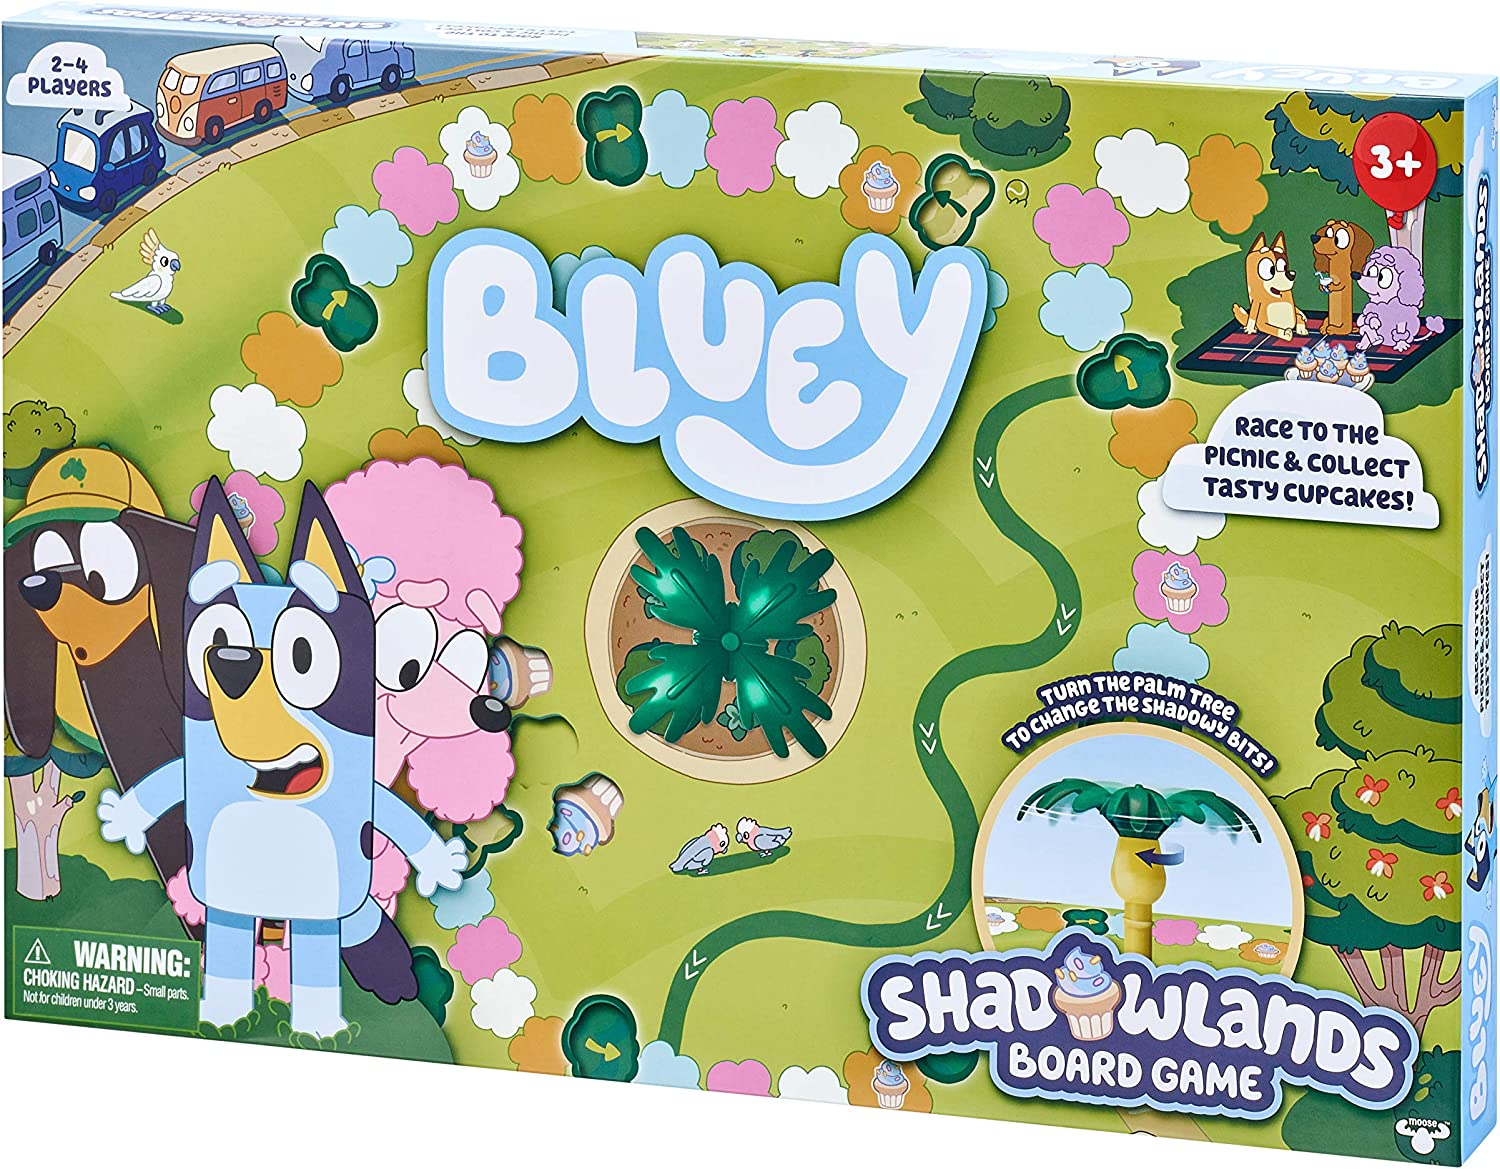 Amazon Com Bluey Shadowlands Board Game Family Game Night Unpredictable Fun Engaging Fun For All Collect All 5 Cupcake Cards 2 4 Players For Ages 3 Multicolor 13011 Toys Games